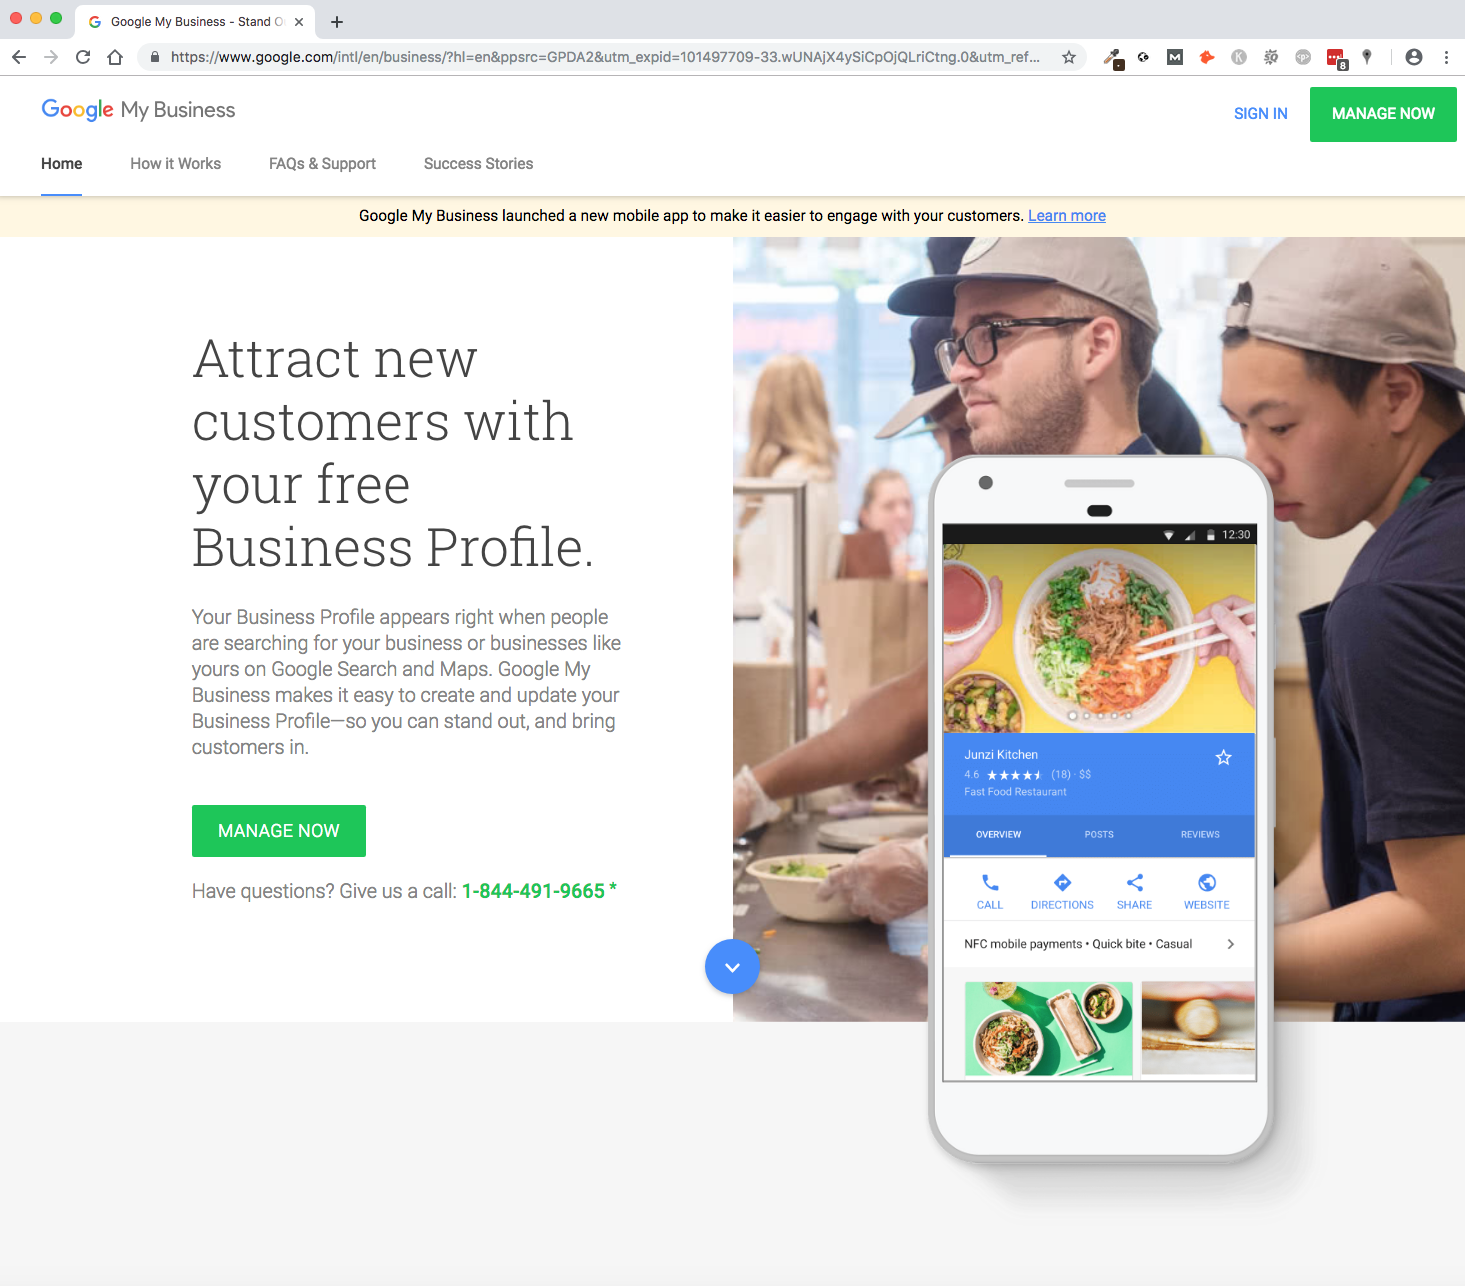 Screenshot of Google My Business home page